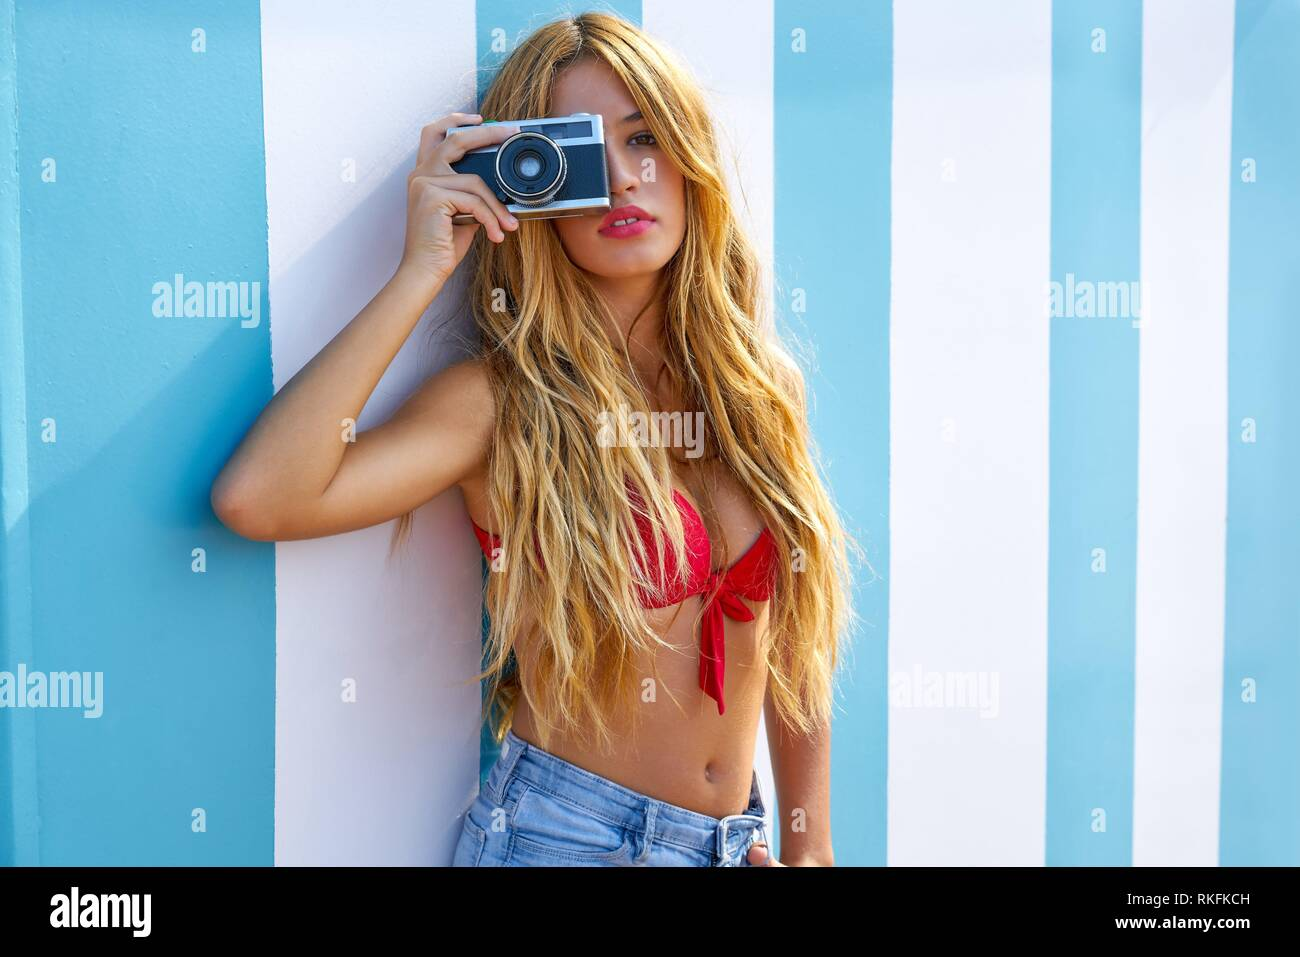 Blond teen summer girl with vintage photo camera in blue stripes wall background. - Stock Image